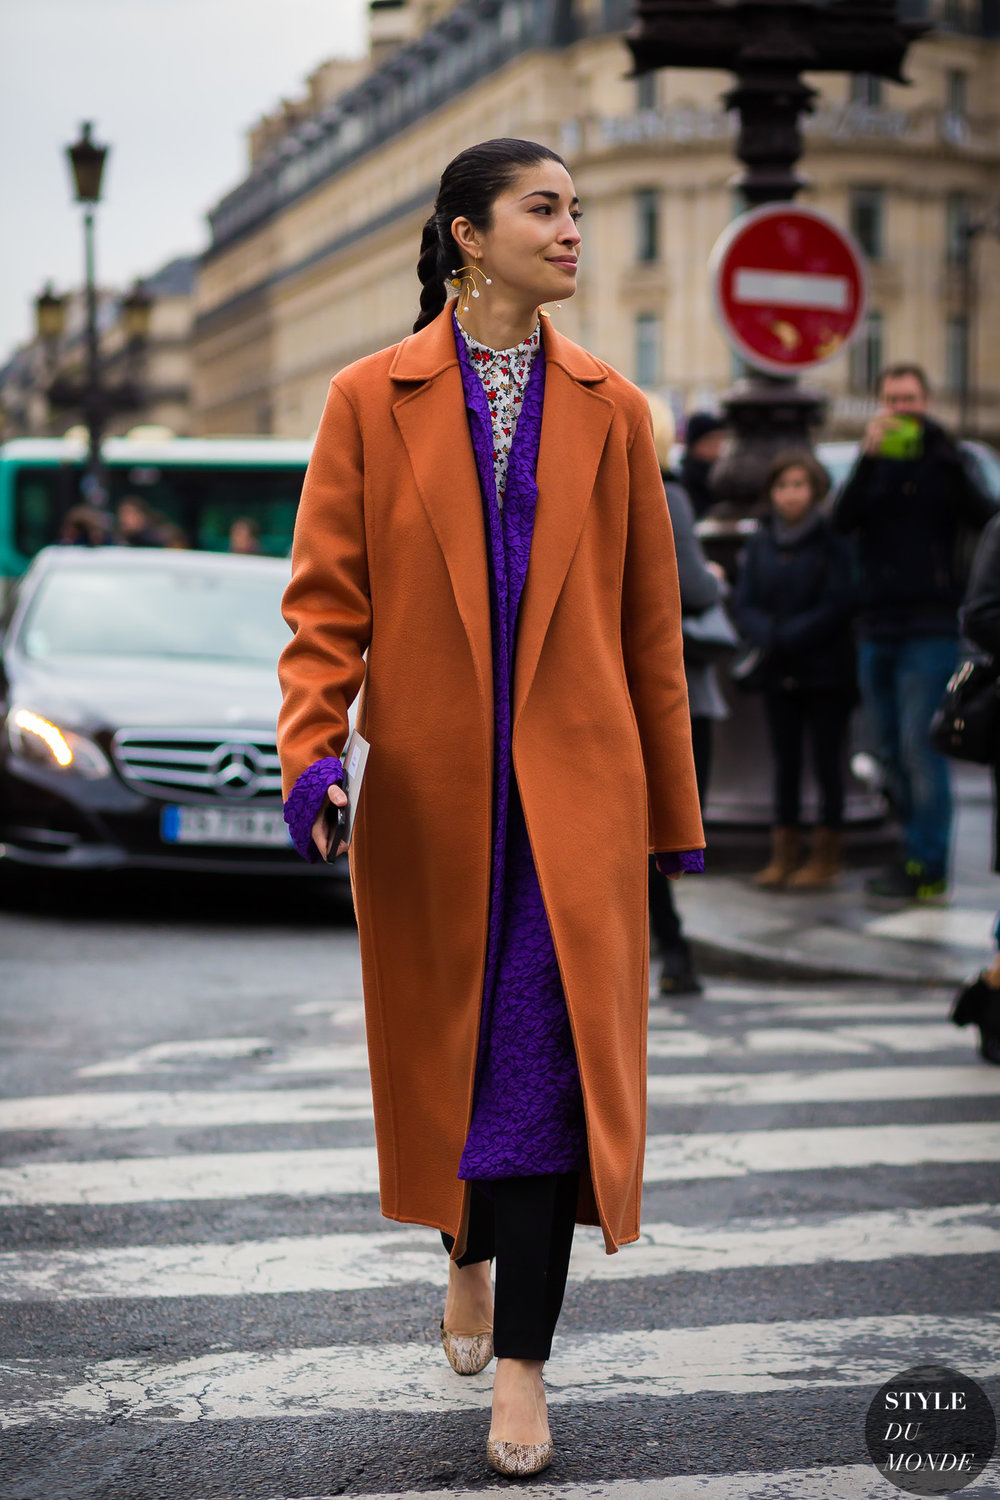 The contrasting colors of the two coats give this outfit more personality! Photo credit: Style du Monde.